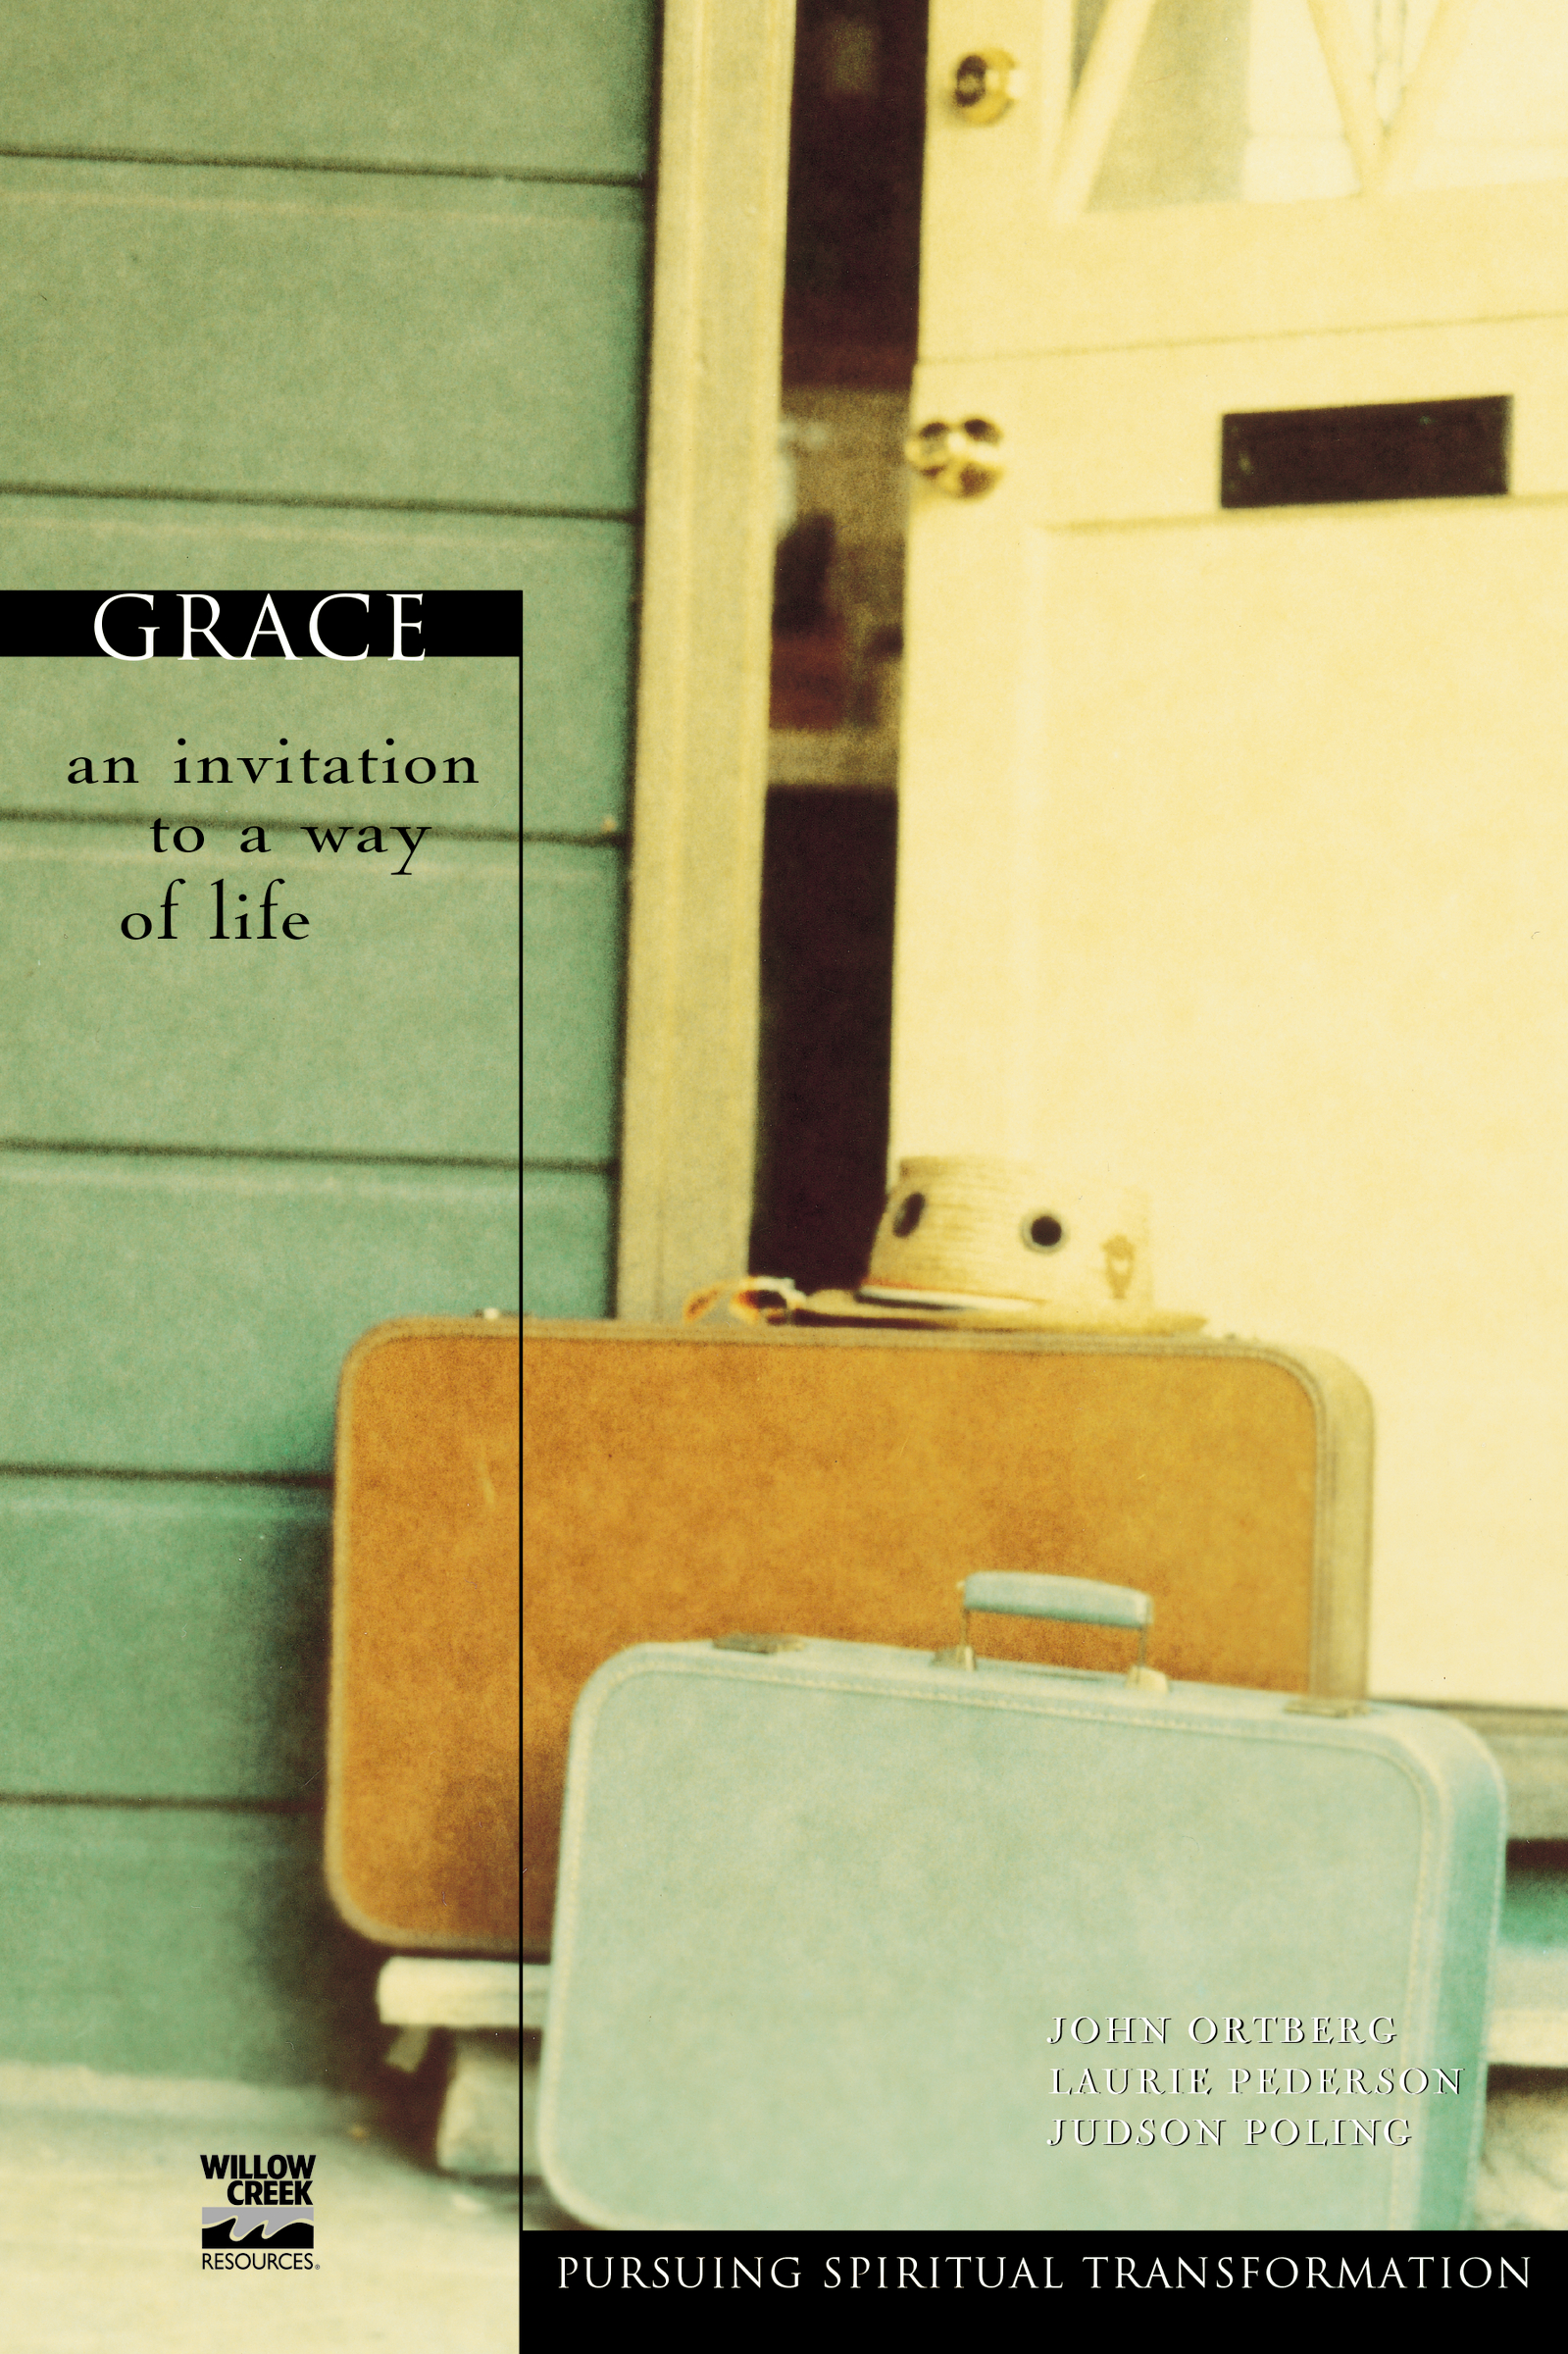 Grace an invitation to a way of life cover image